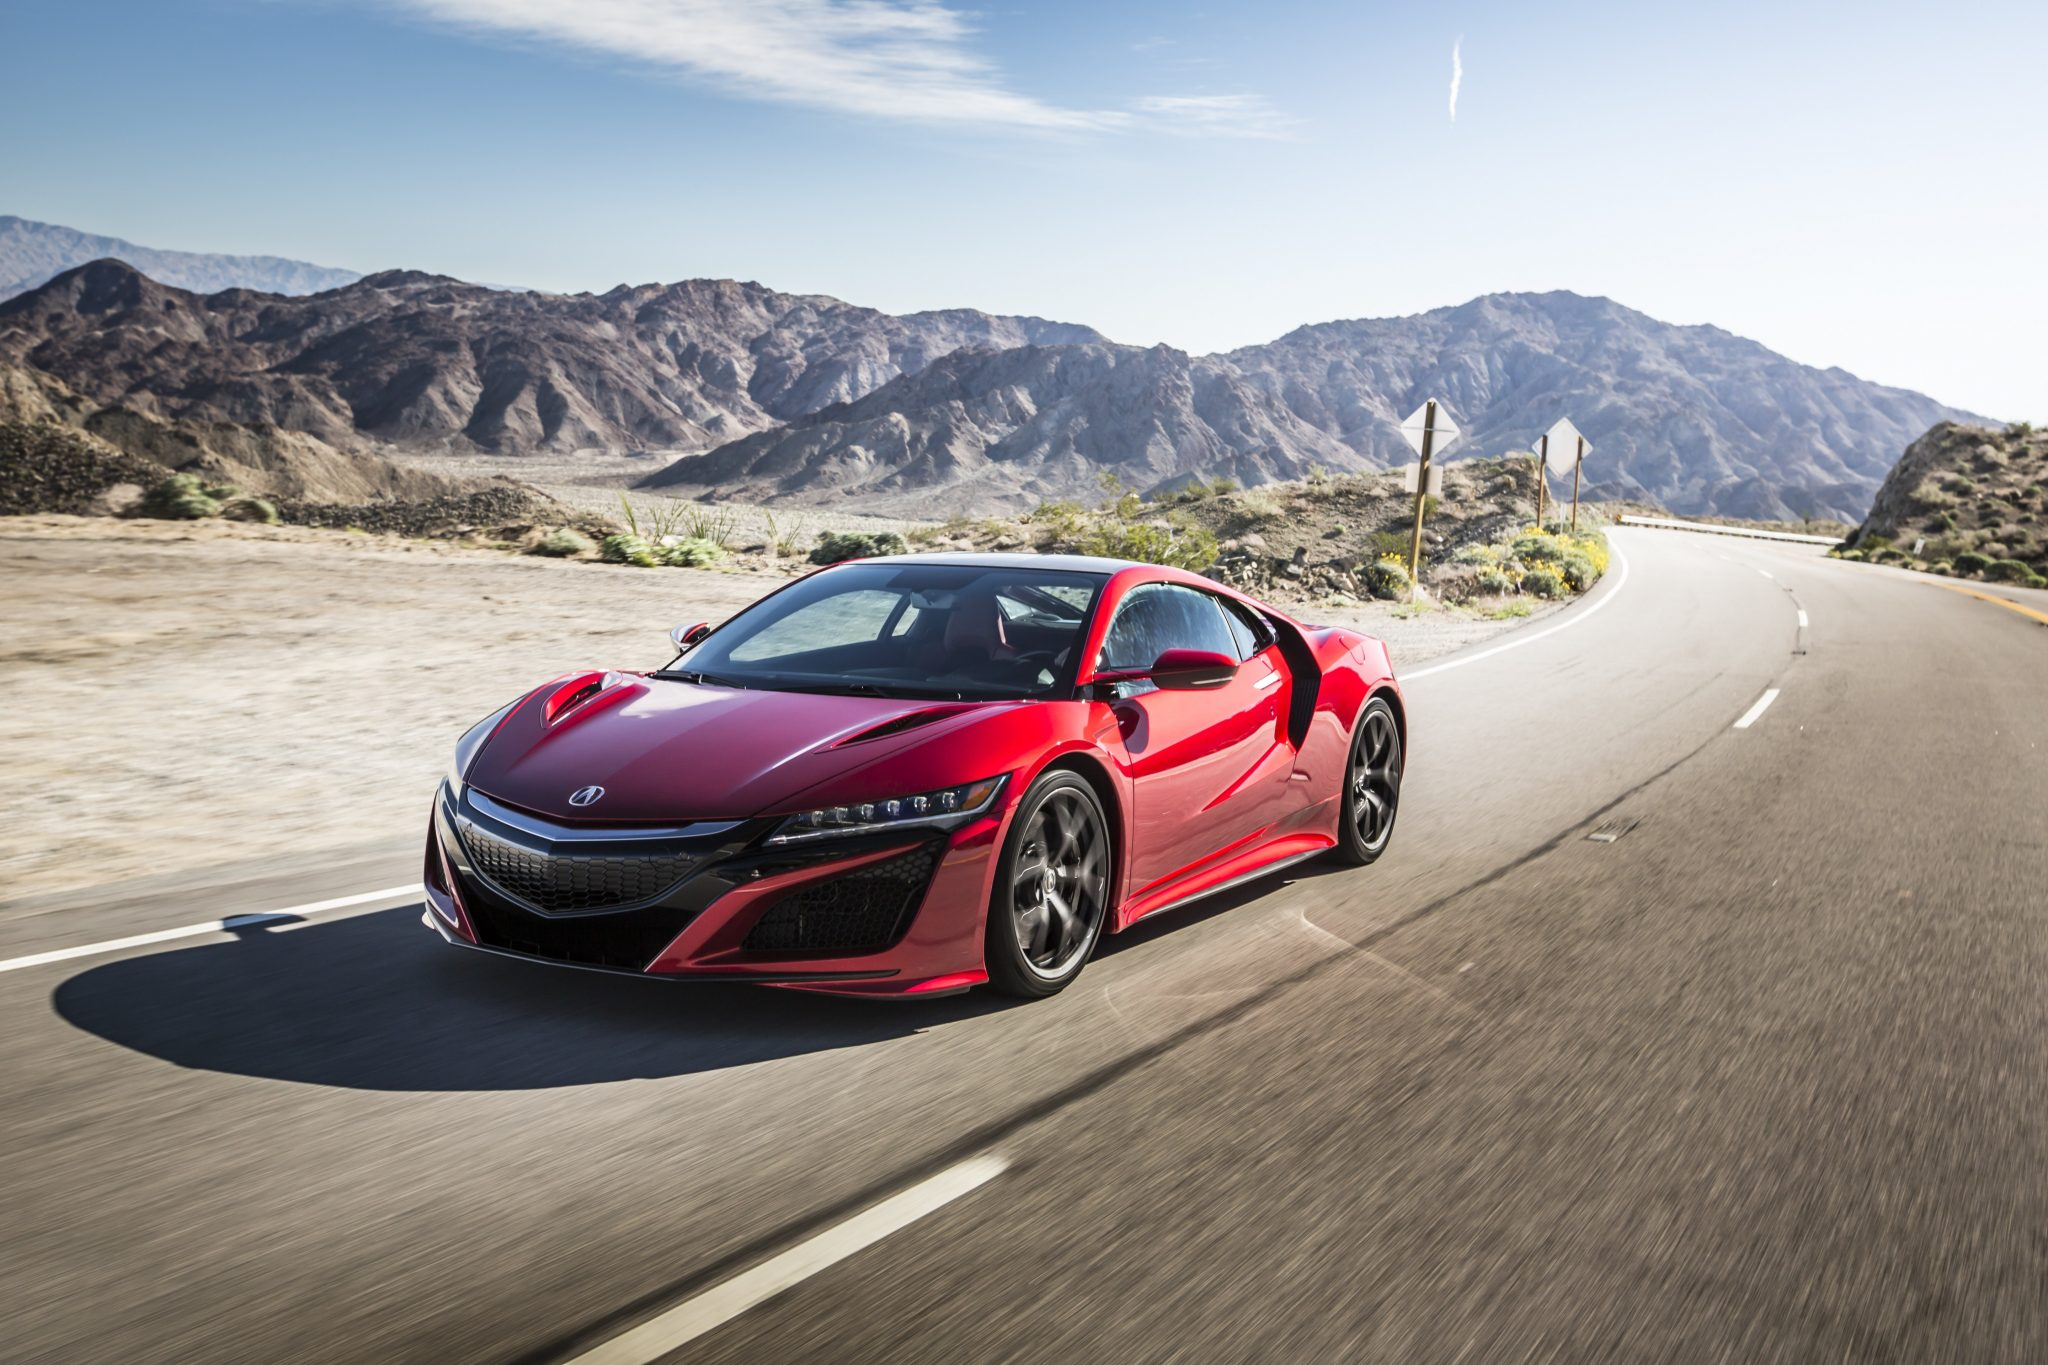 2017 acura nsx goes head 2 head with nissan gt r. Black Bedroom Furniture Sets. Home Design Ideas